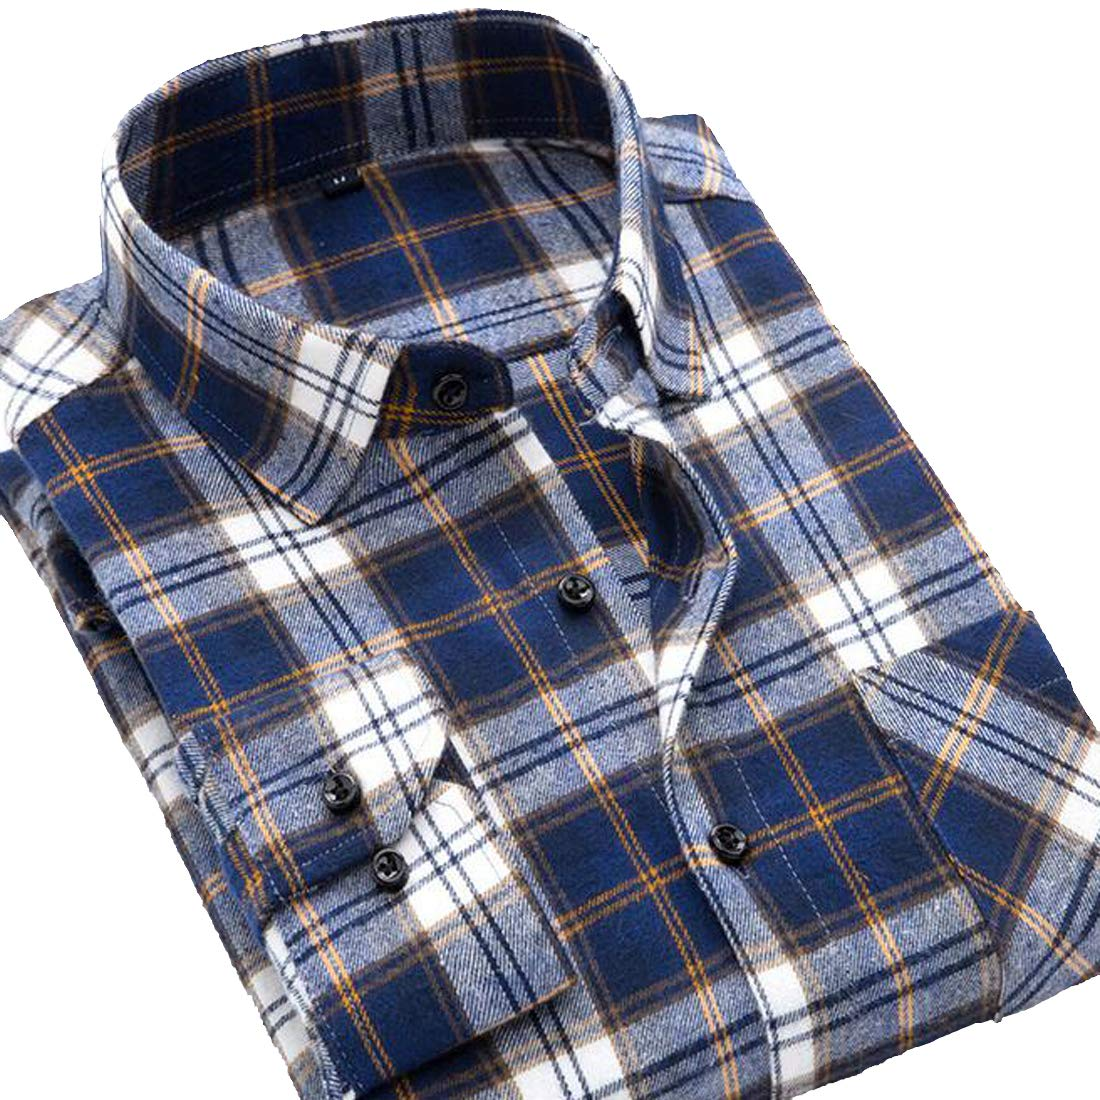 Lutratocro Mens Fashion Long Sleeve Cotton Button Down Plaid Flannel Shirt